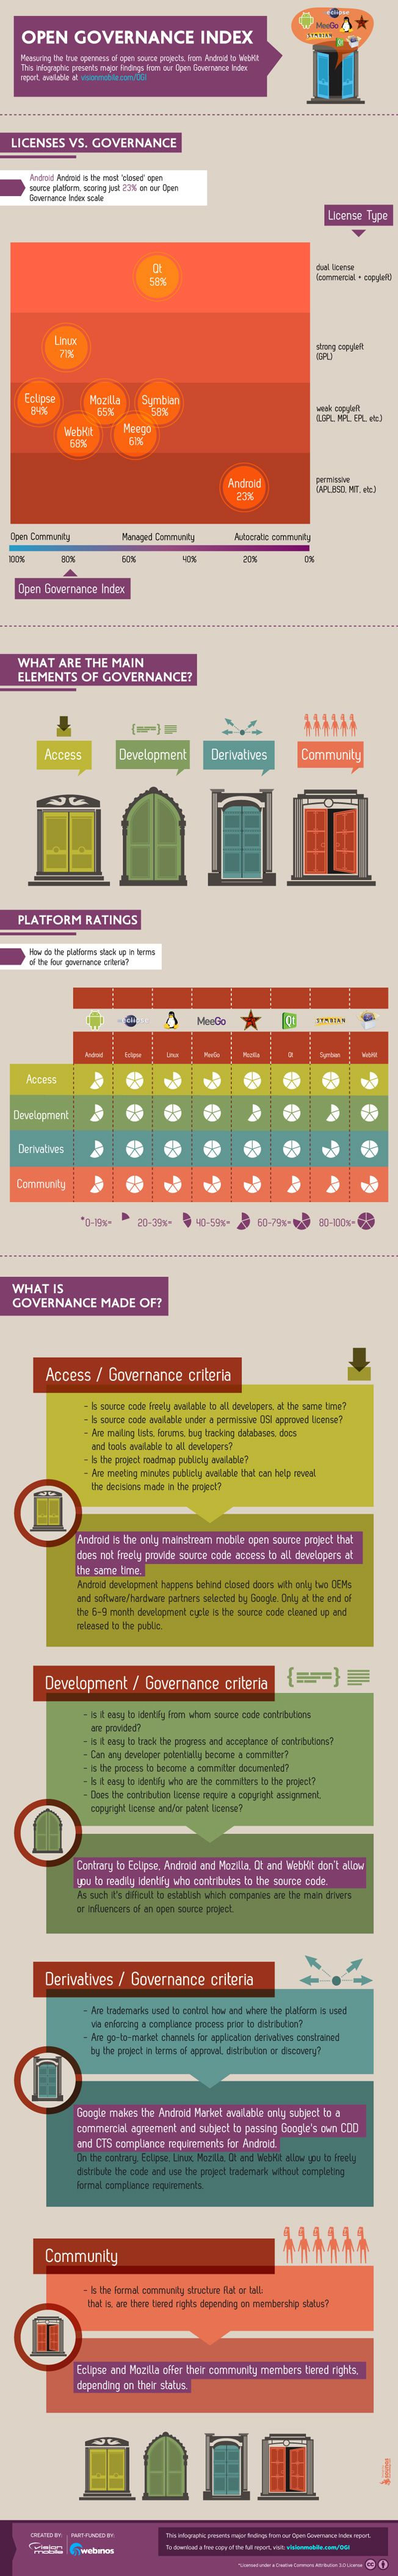 Android ranked most 'closed' open source OS   | Visit our new infographic gallery at http://visualoop.com/